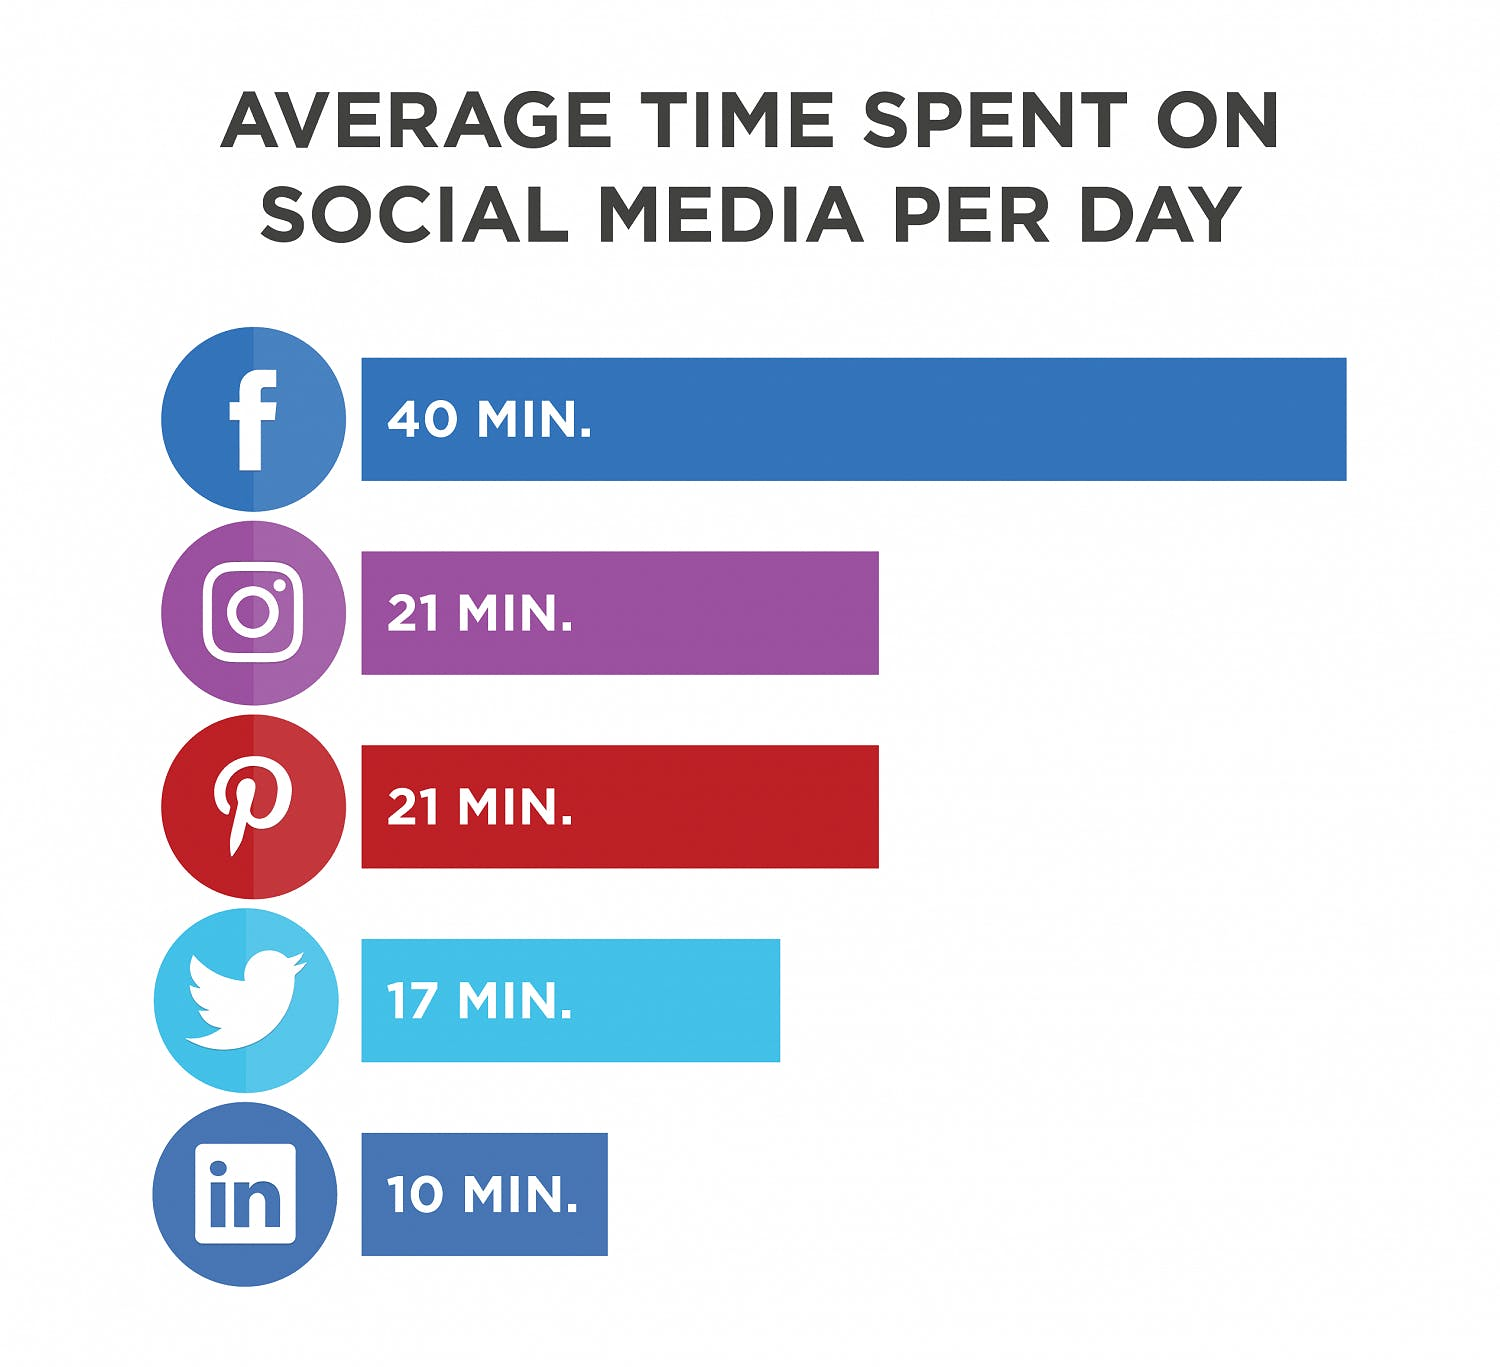 Social media users spend an average of 22 minutes browsing each day